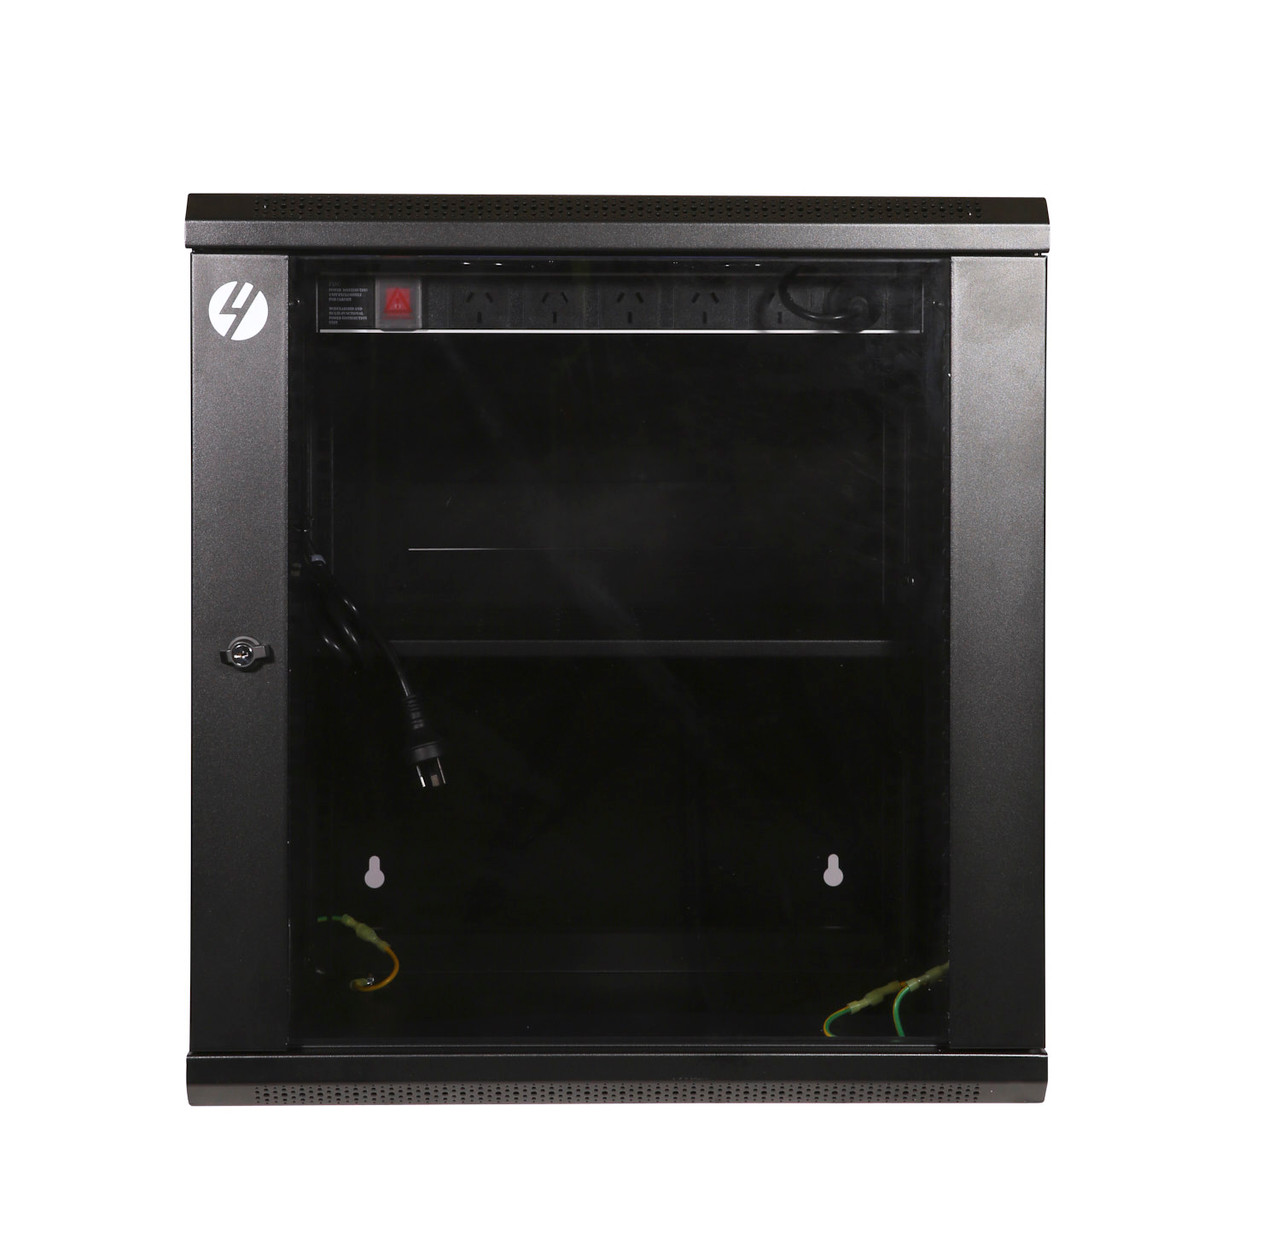 Image for 4Cabling 12RU W600mm x D600mm Hinged Wall Mount Server Rack CX Computer Superstore